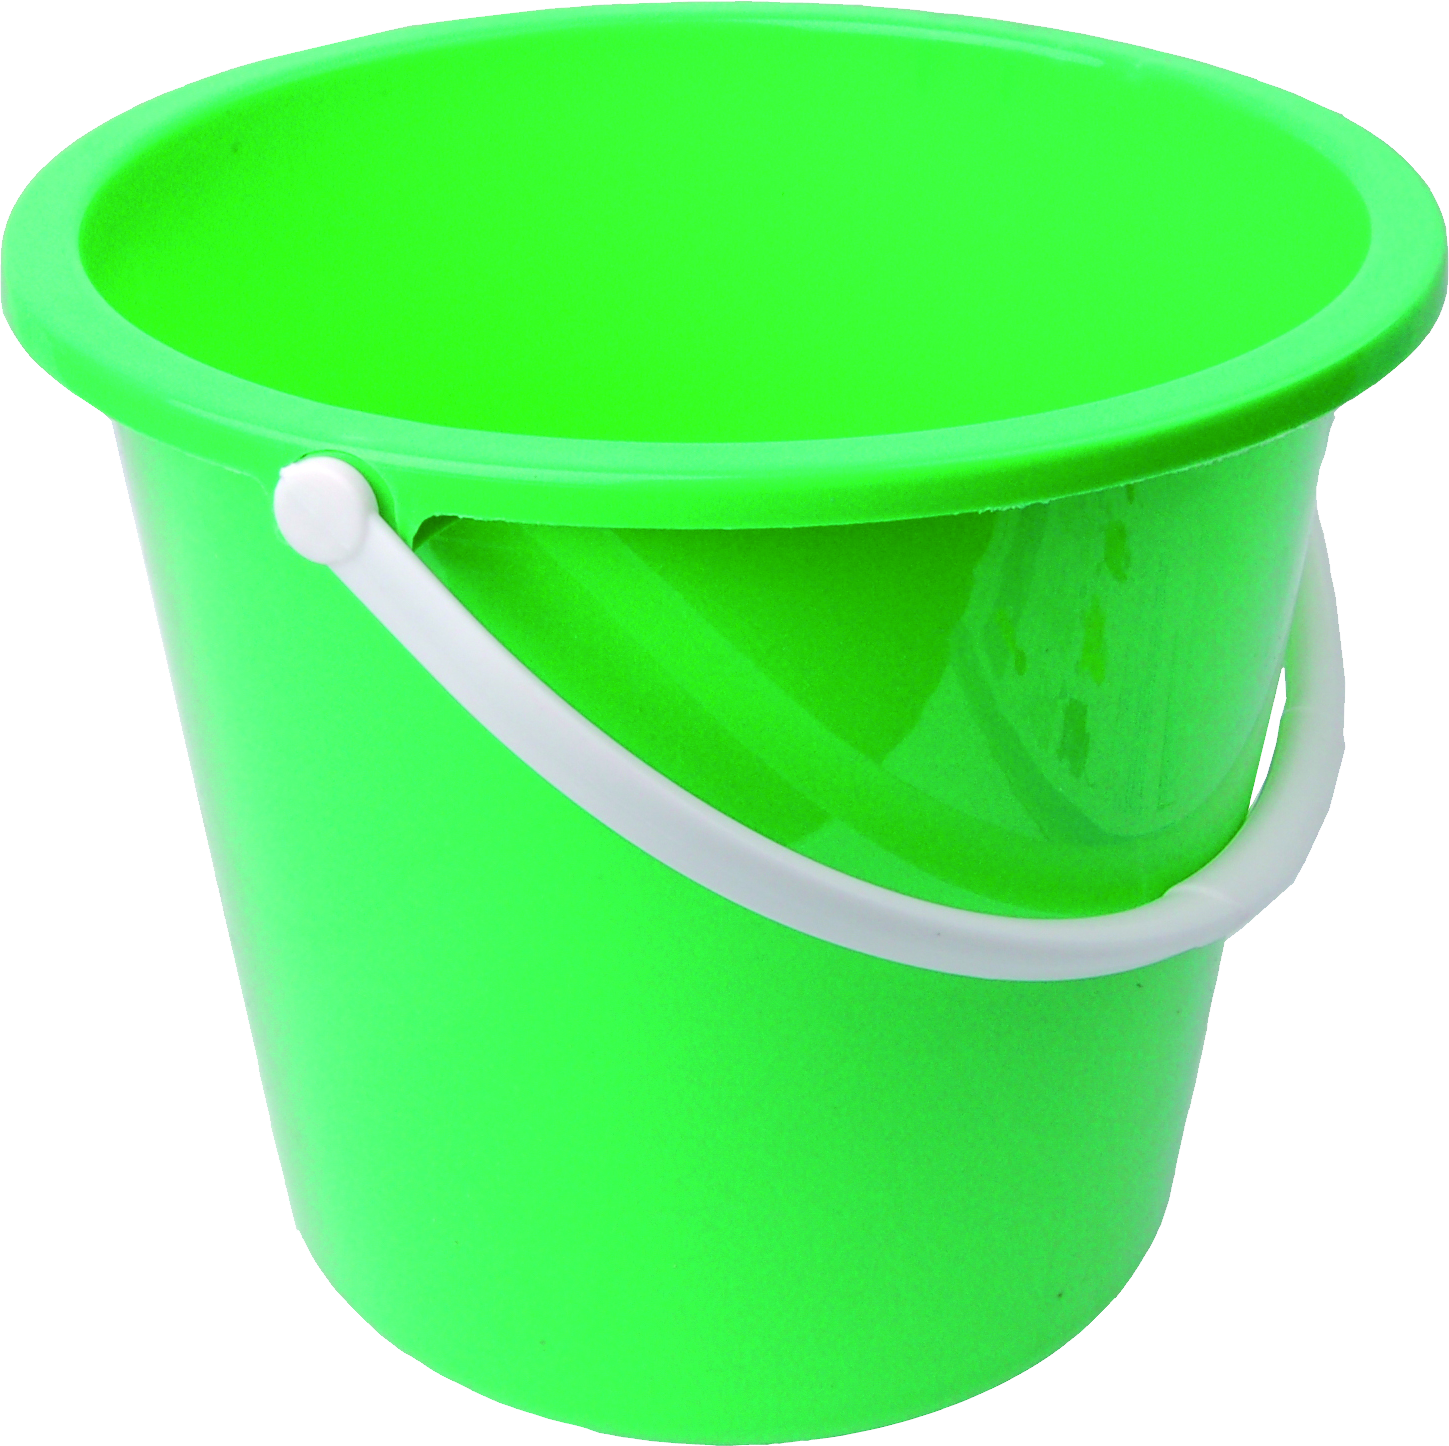 Flower water bucket clipart vector black and white download Green PLastic Bucket PNG Image - PurePNG | Free transparent CC0 PNG ... vector black and white download